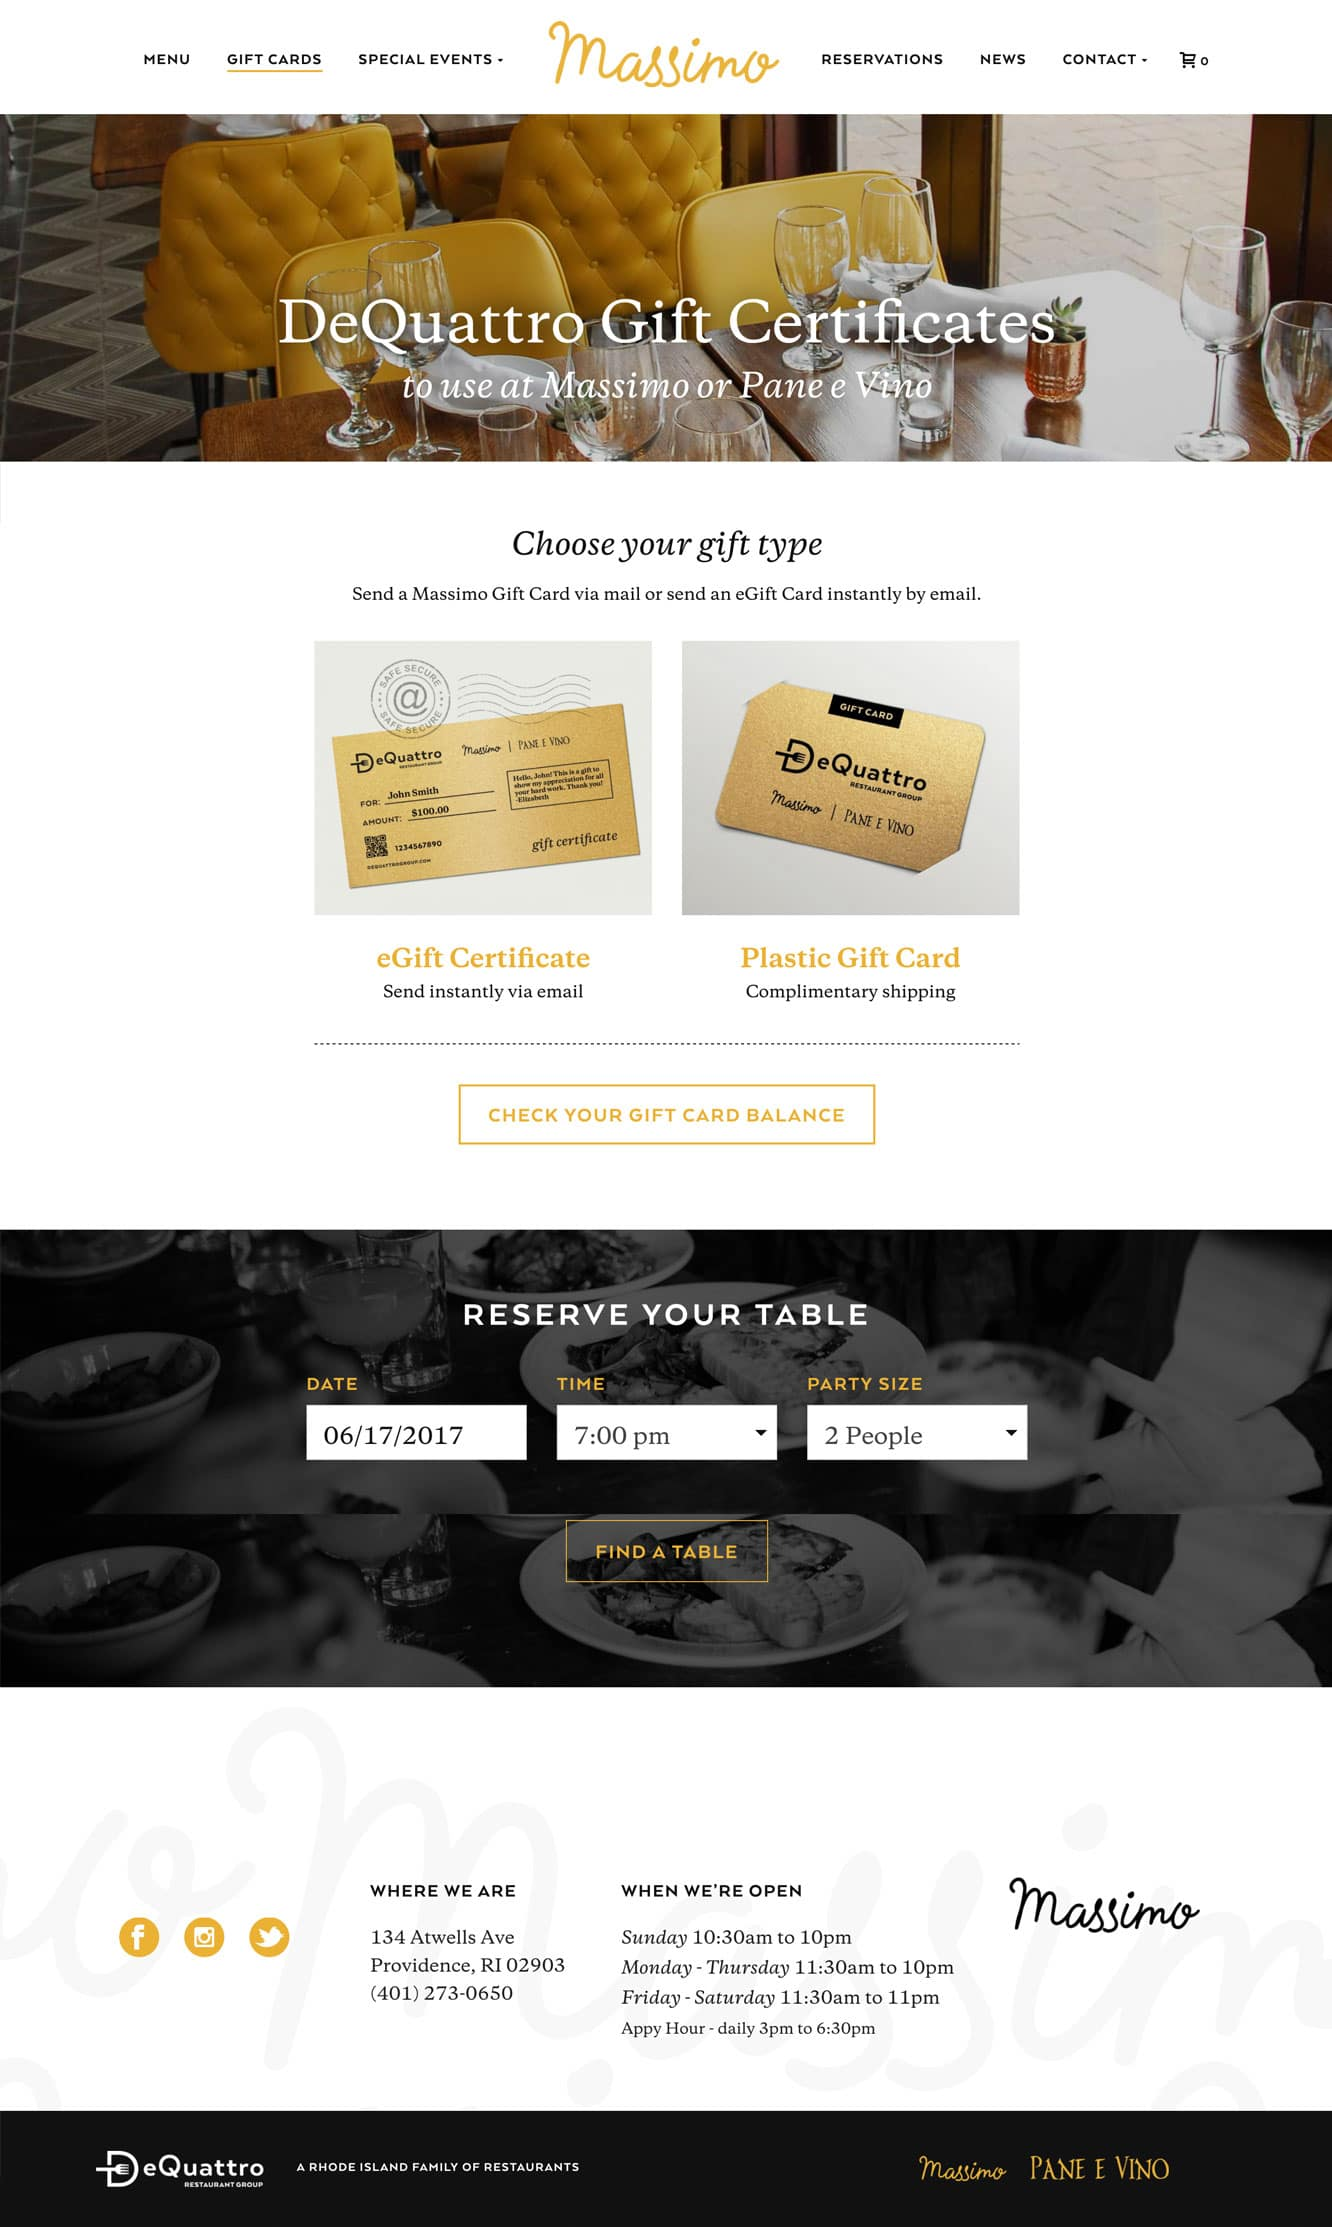 RI restaurant website design and development